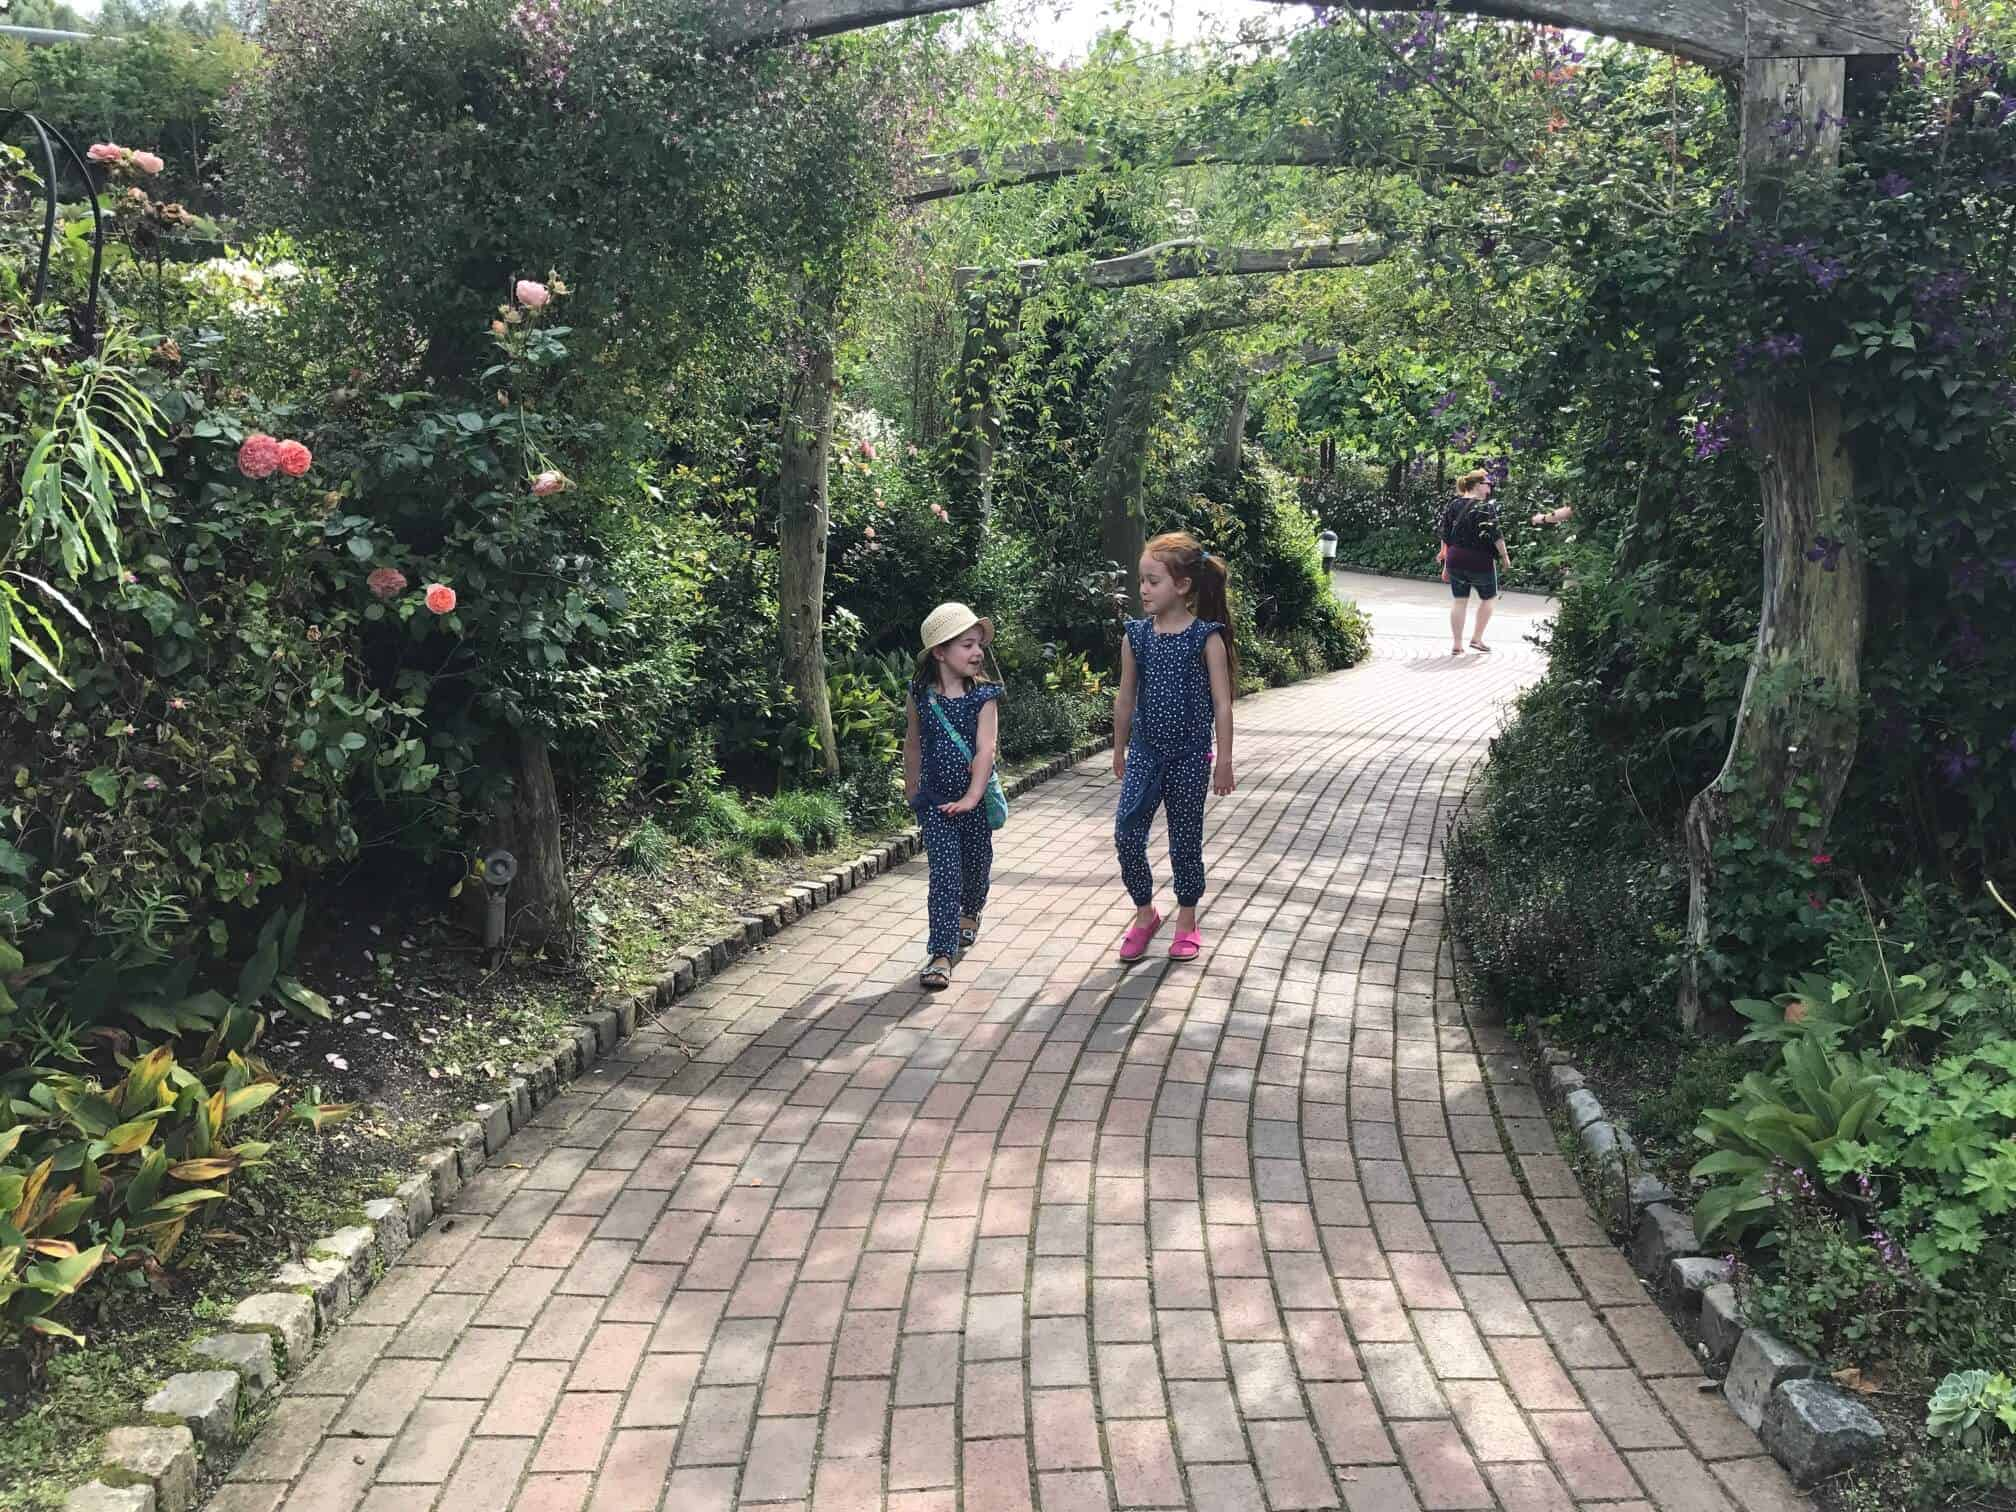 Thea and Ava enjoying The Eden Project